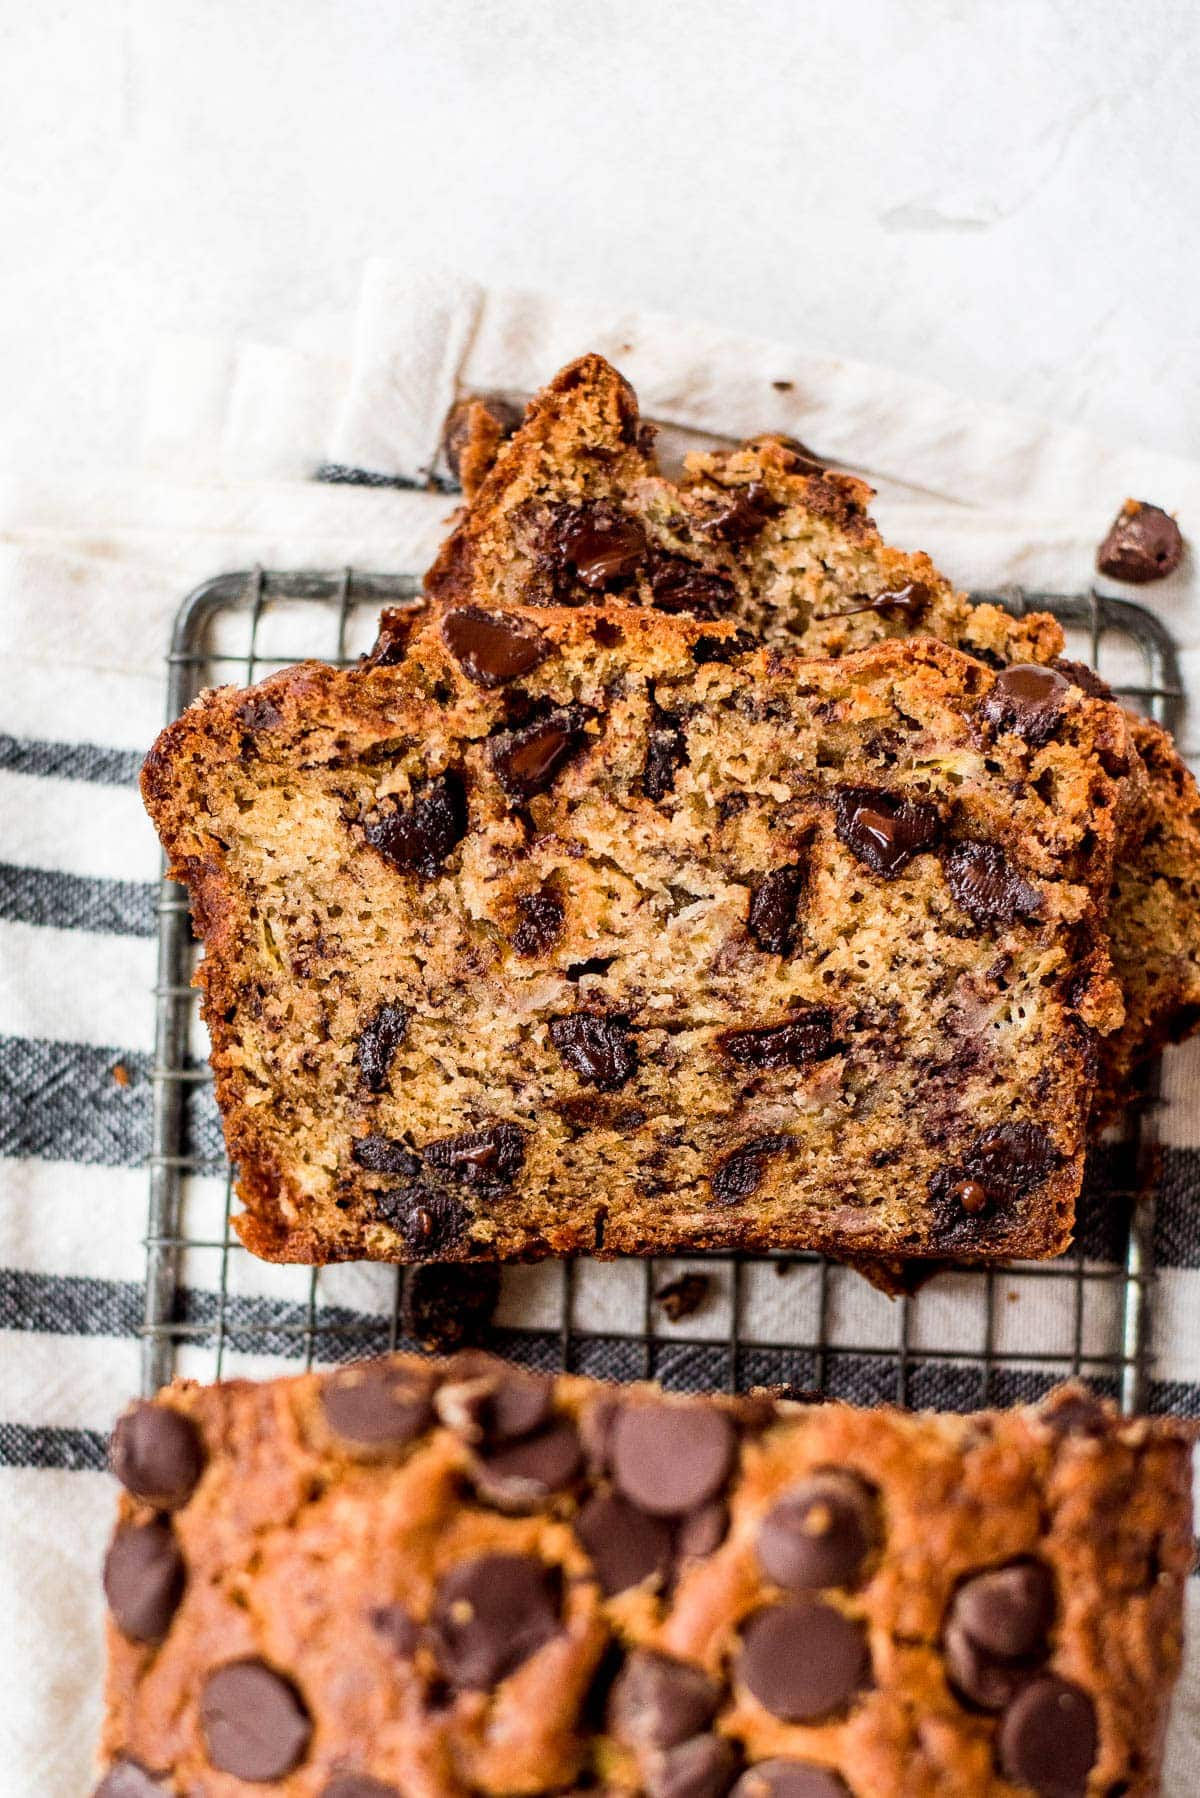 close up of slices of chocolate chip banana bread